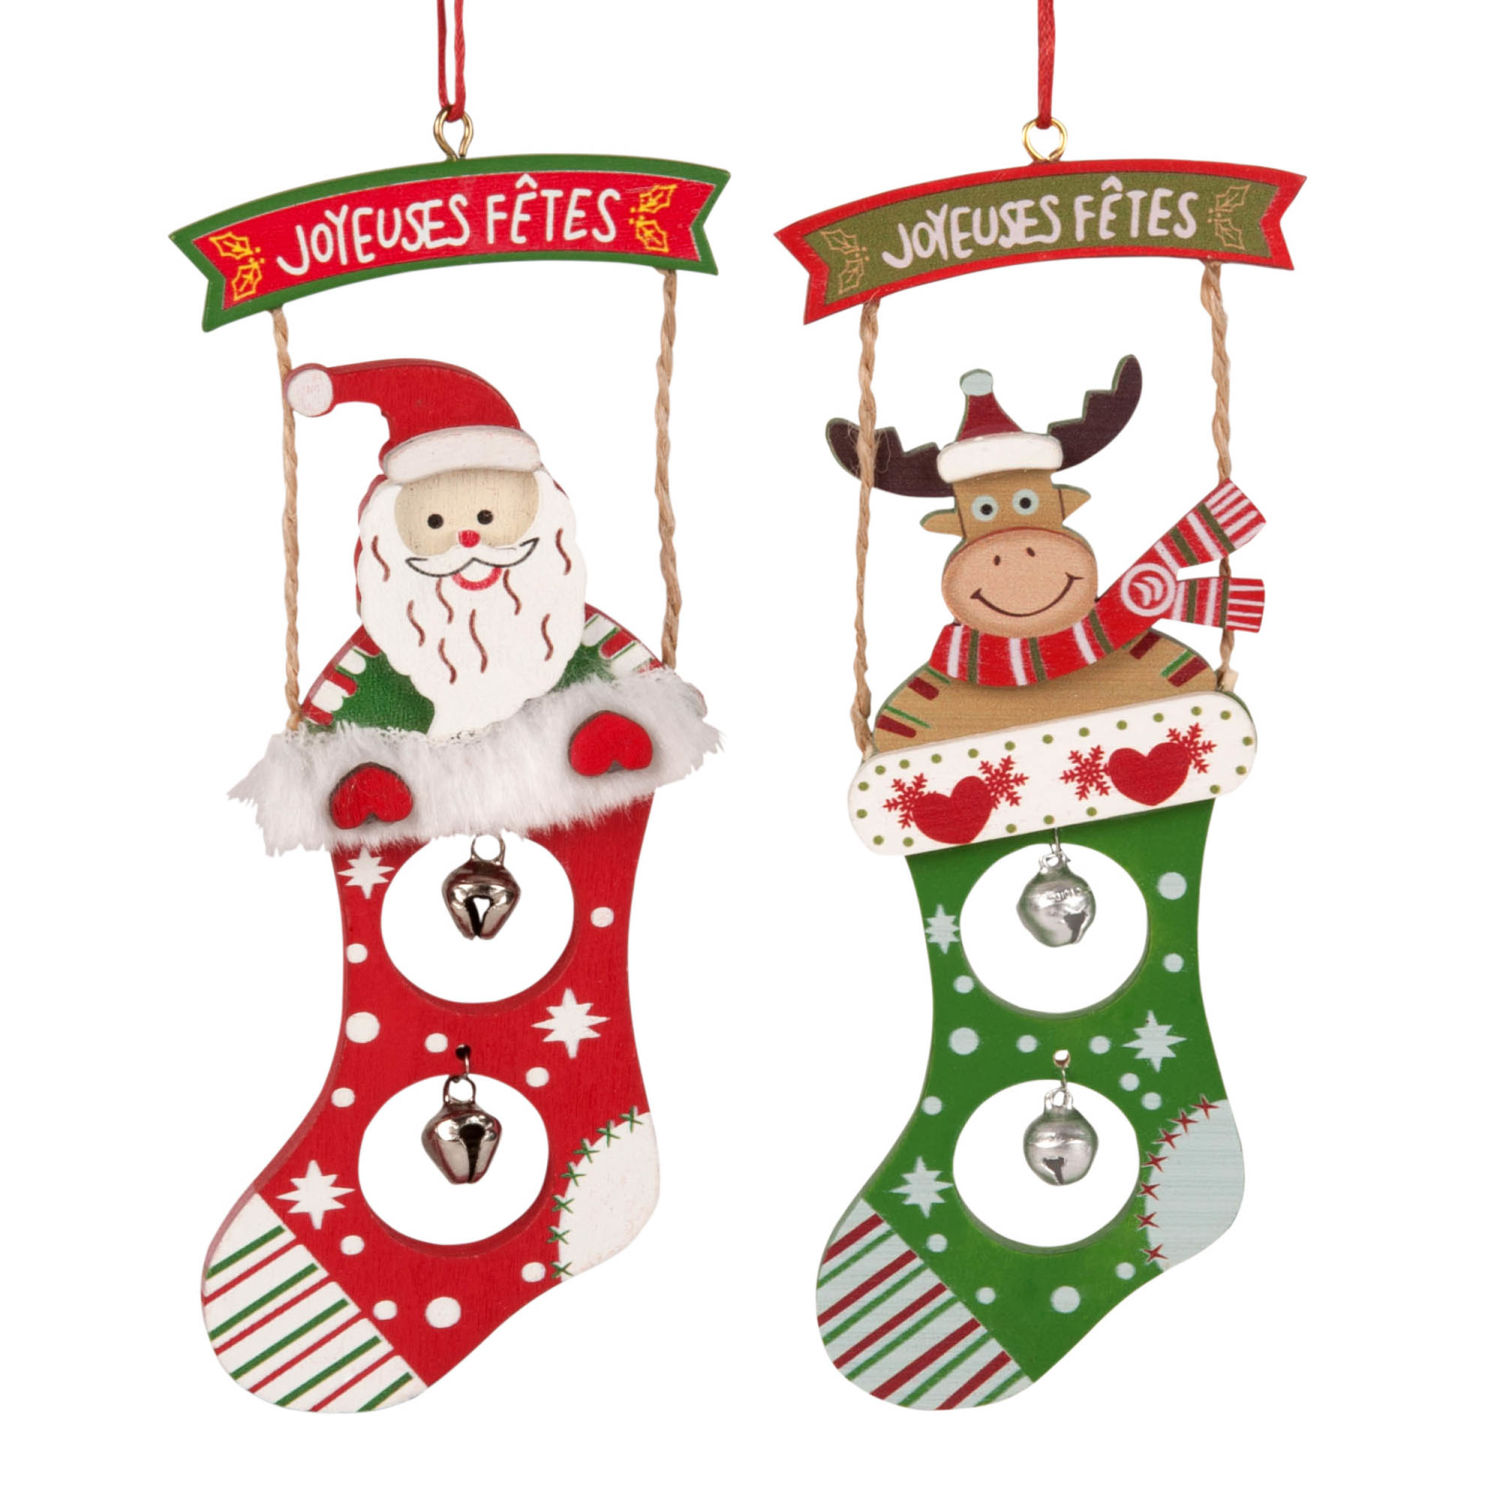 Christmas Stockings Hanging Decorations with Bells | Maisons du Monde